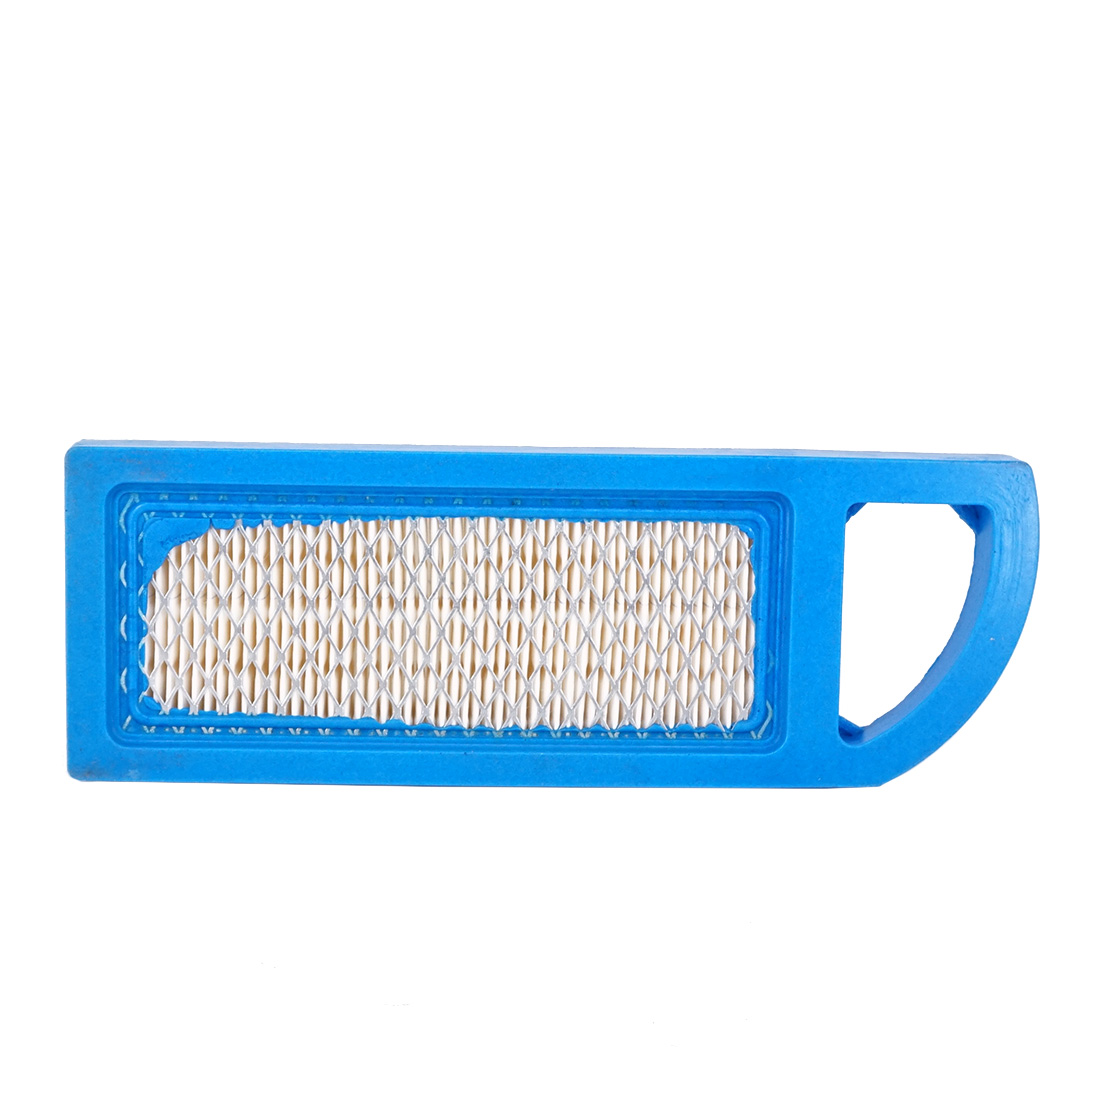 Fits for briggs stratton air filter replacement engines for 5 hp motor specification